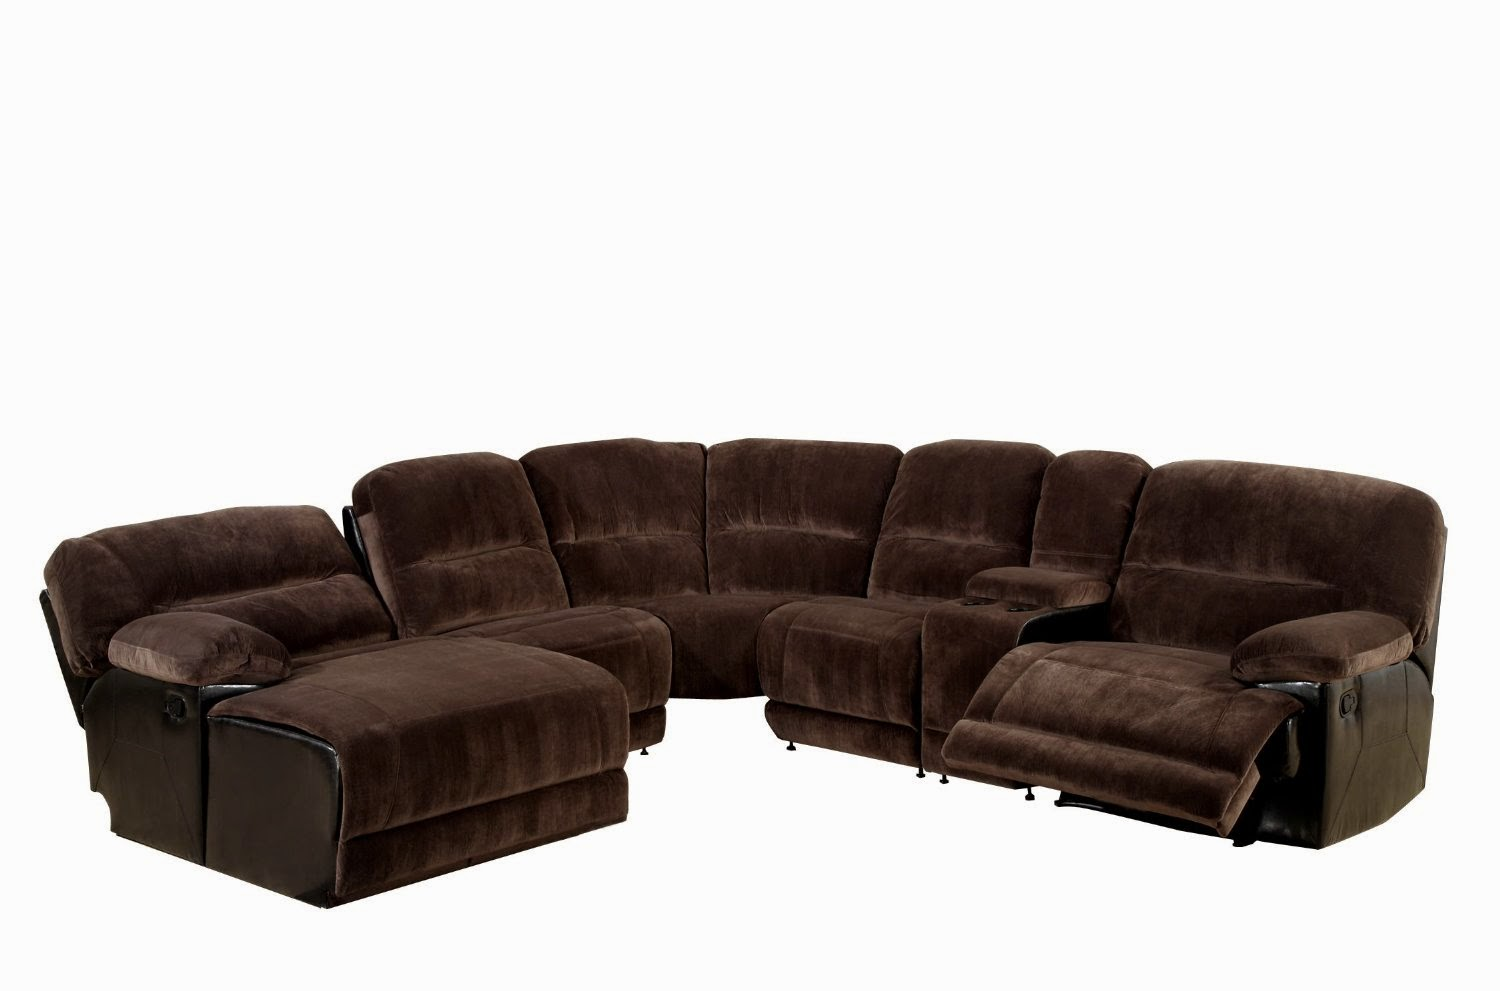 Sofa Recliner Reviews: Microfiber Recliner Sectional Sofa ...